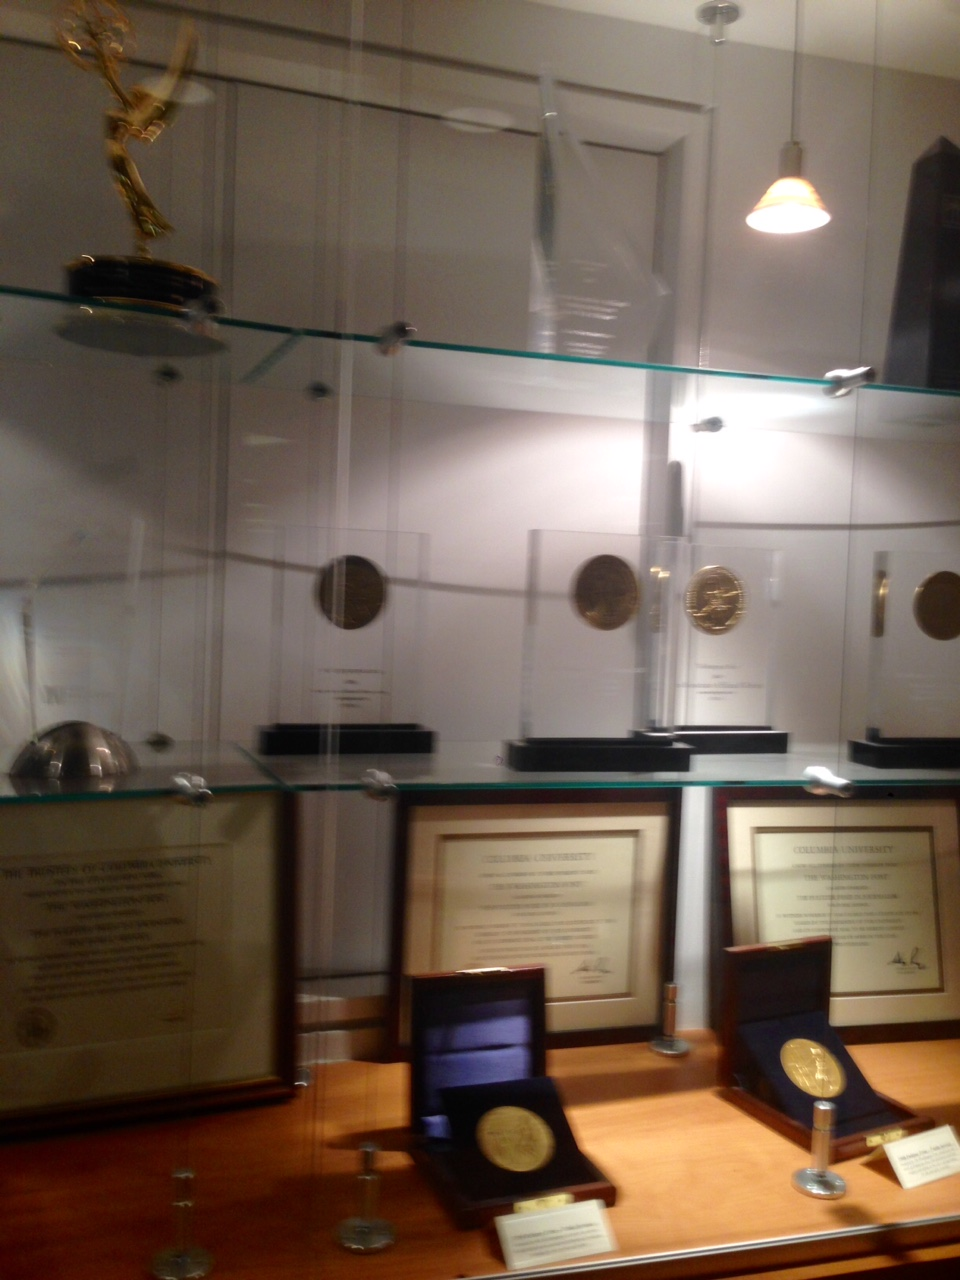 Just one slice of the Great Wall of Awards... Spot the Emmy? The Pulitzer? #dreams